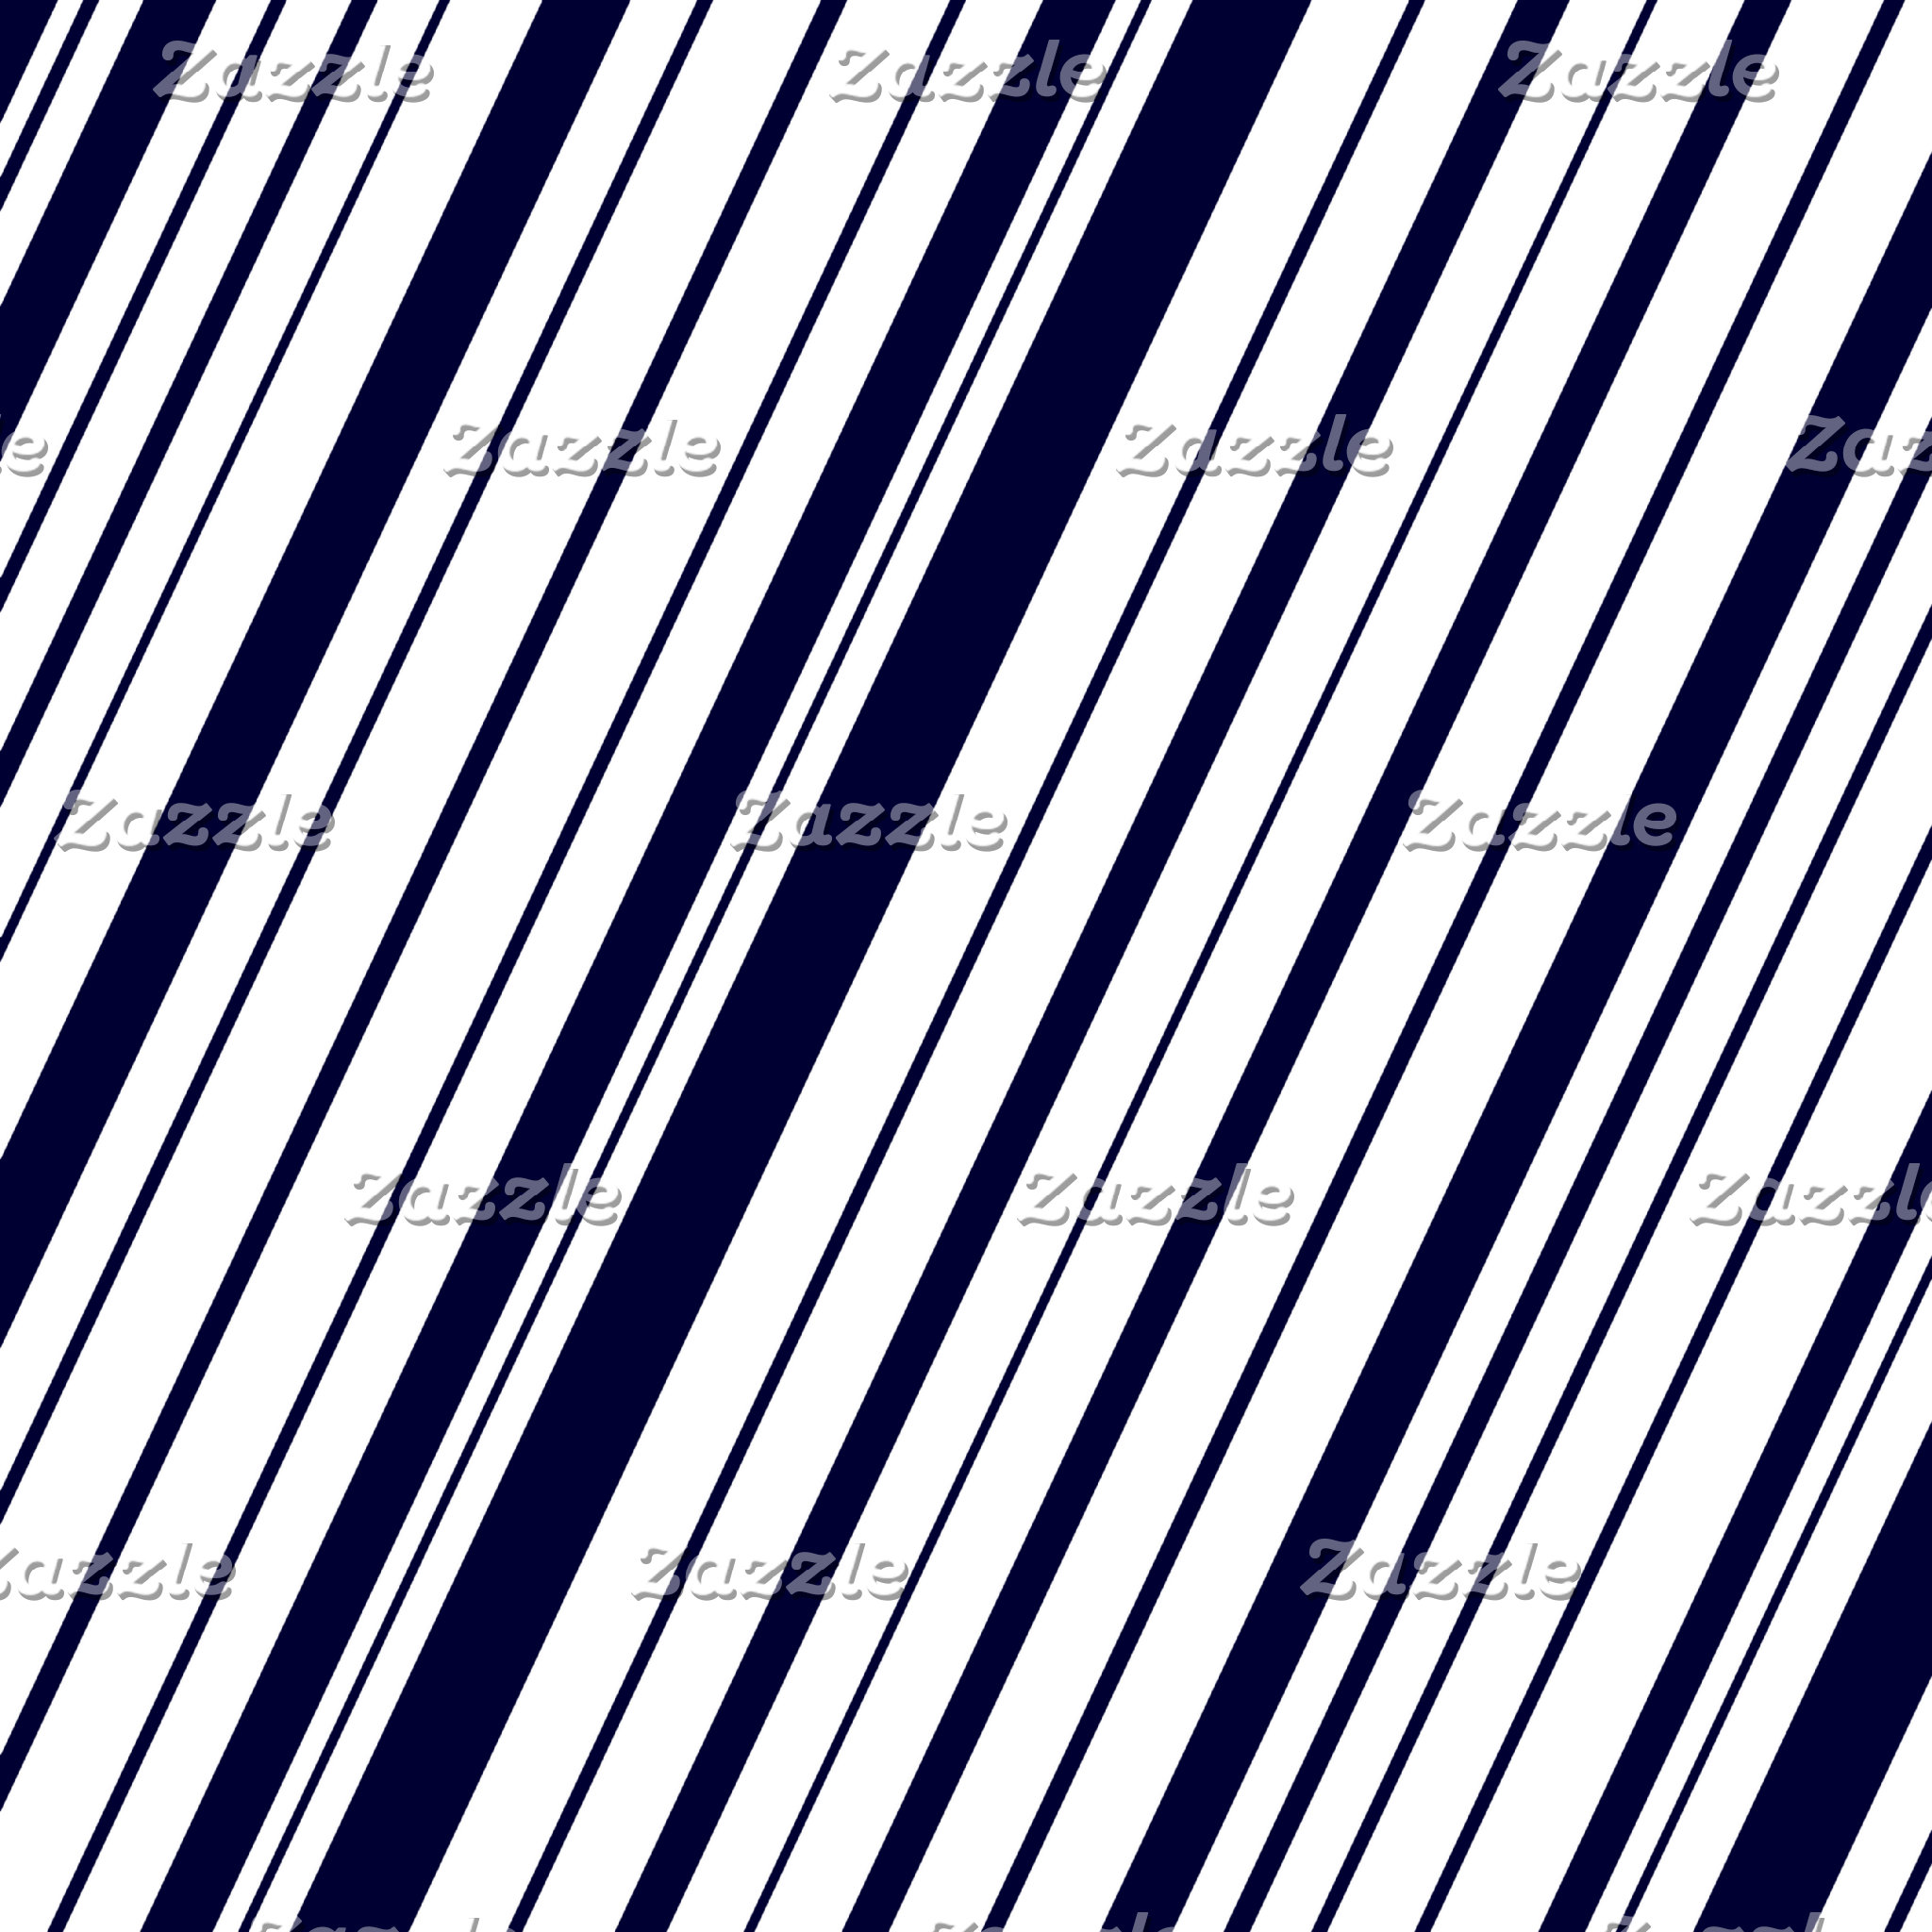 Diagonal Stripes